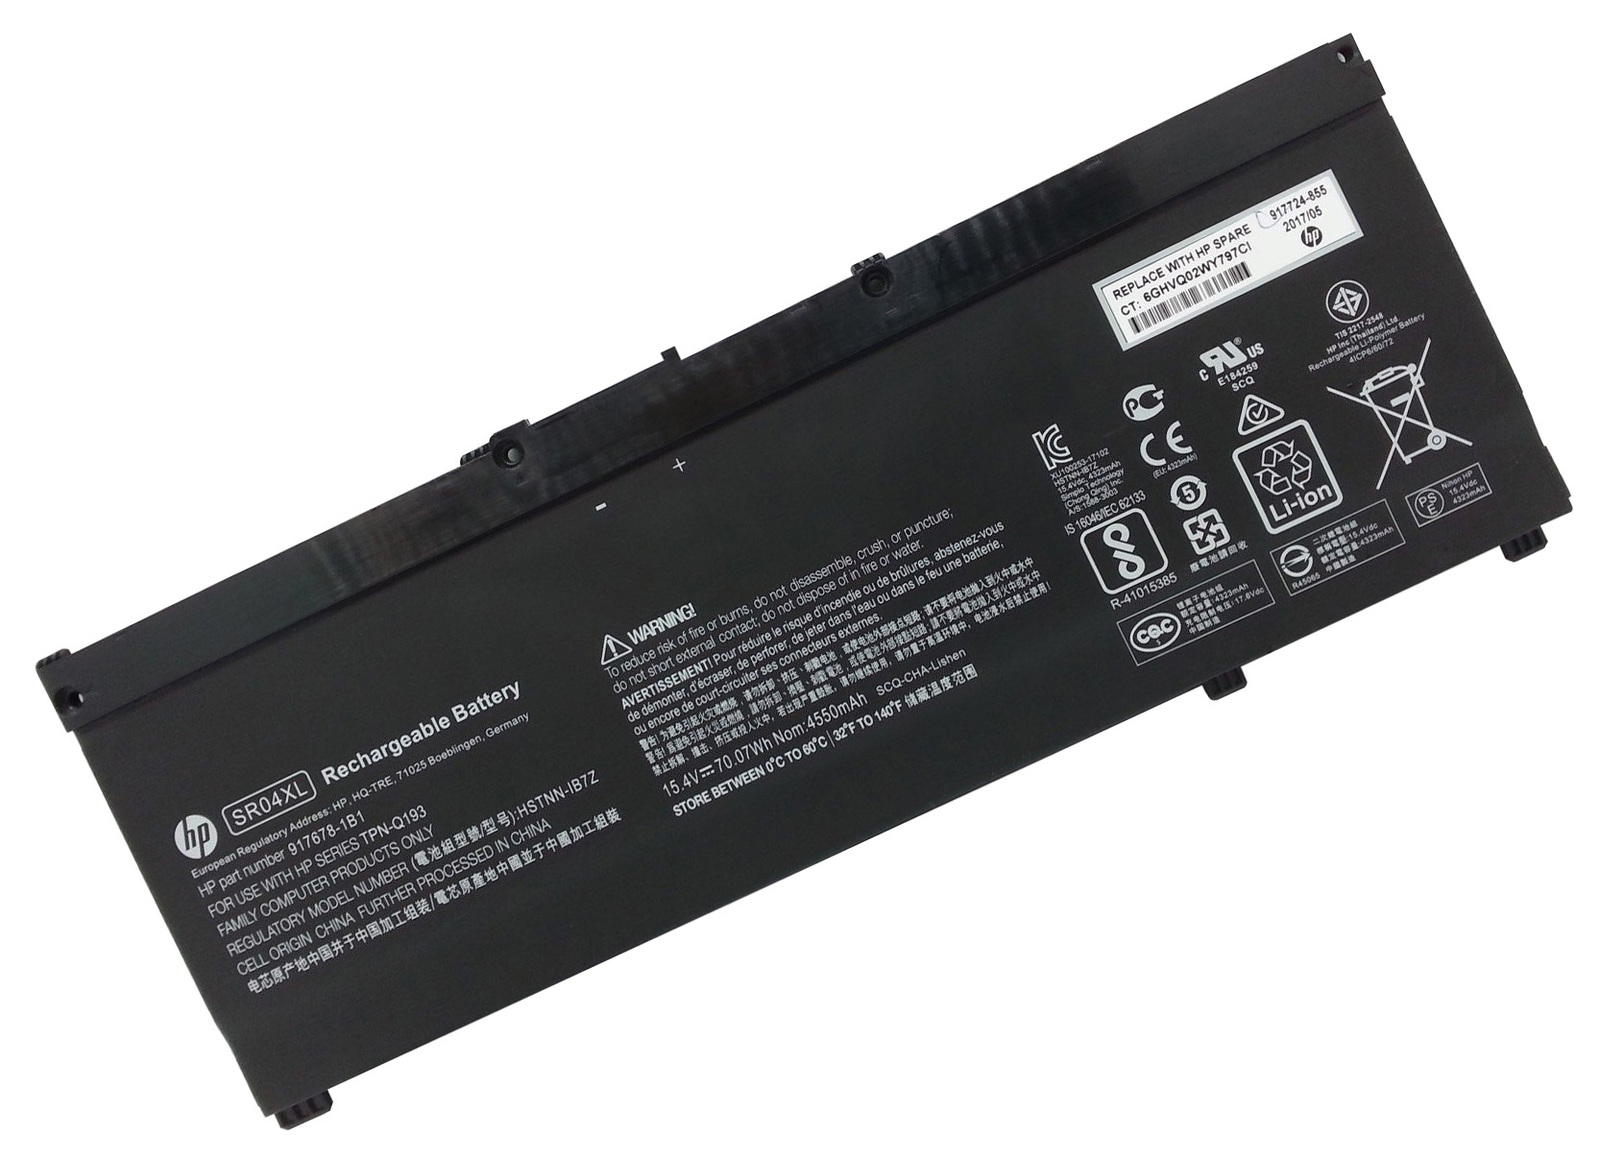 Primary image for Genuine HP Omen 15-ce002ng 15-ce002ni 15-ce002nia 15-ce002nk 15-ce002nl Battery